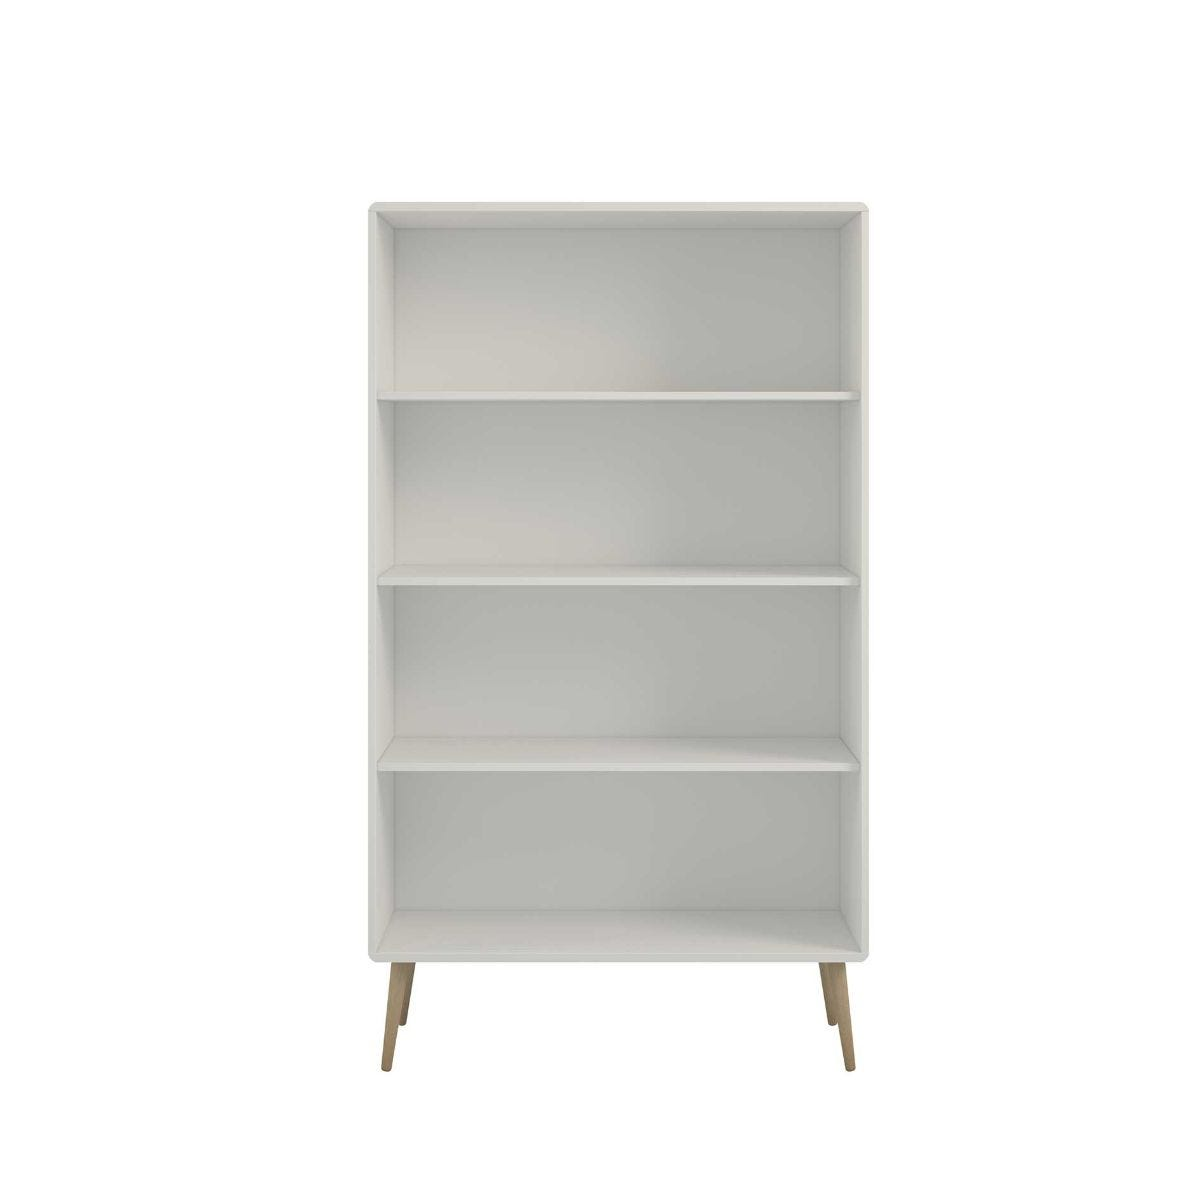 Steens Retro Wide Bookcase, White